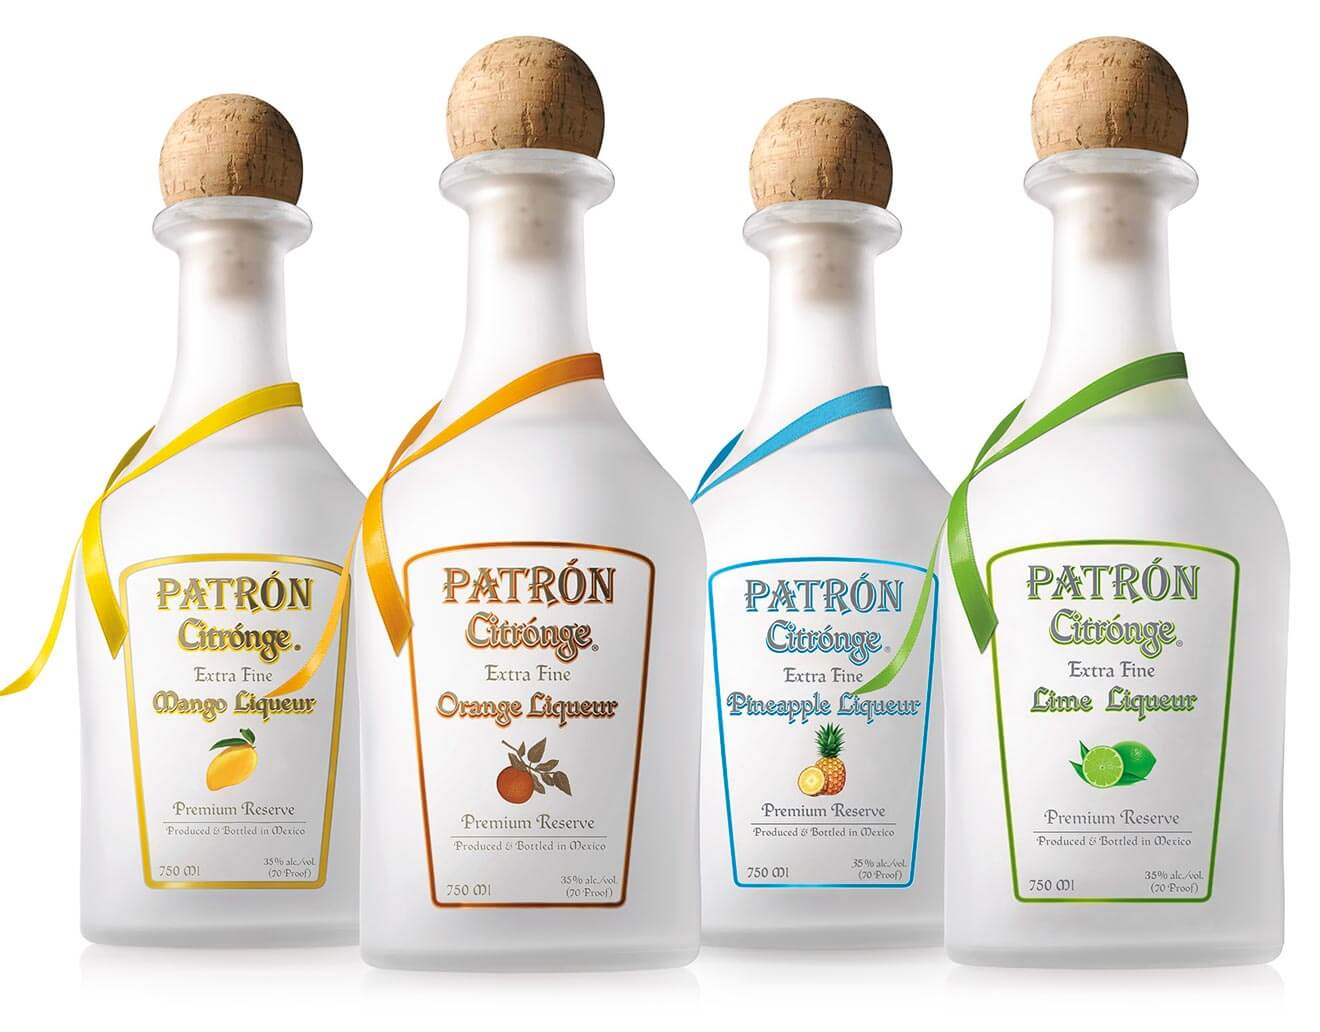 Patrón Citrónge Flavor Portfolio, bottles on white